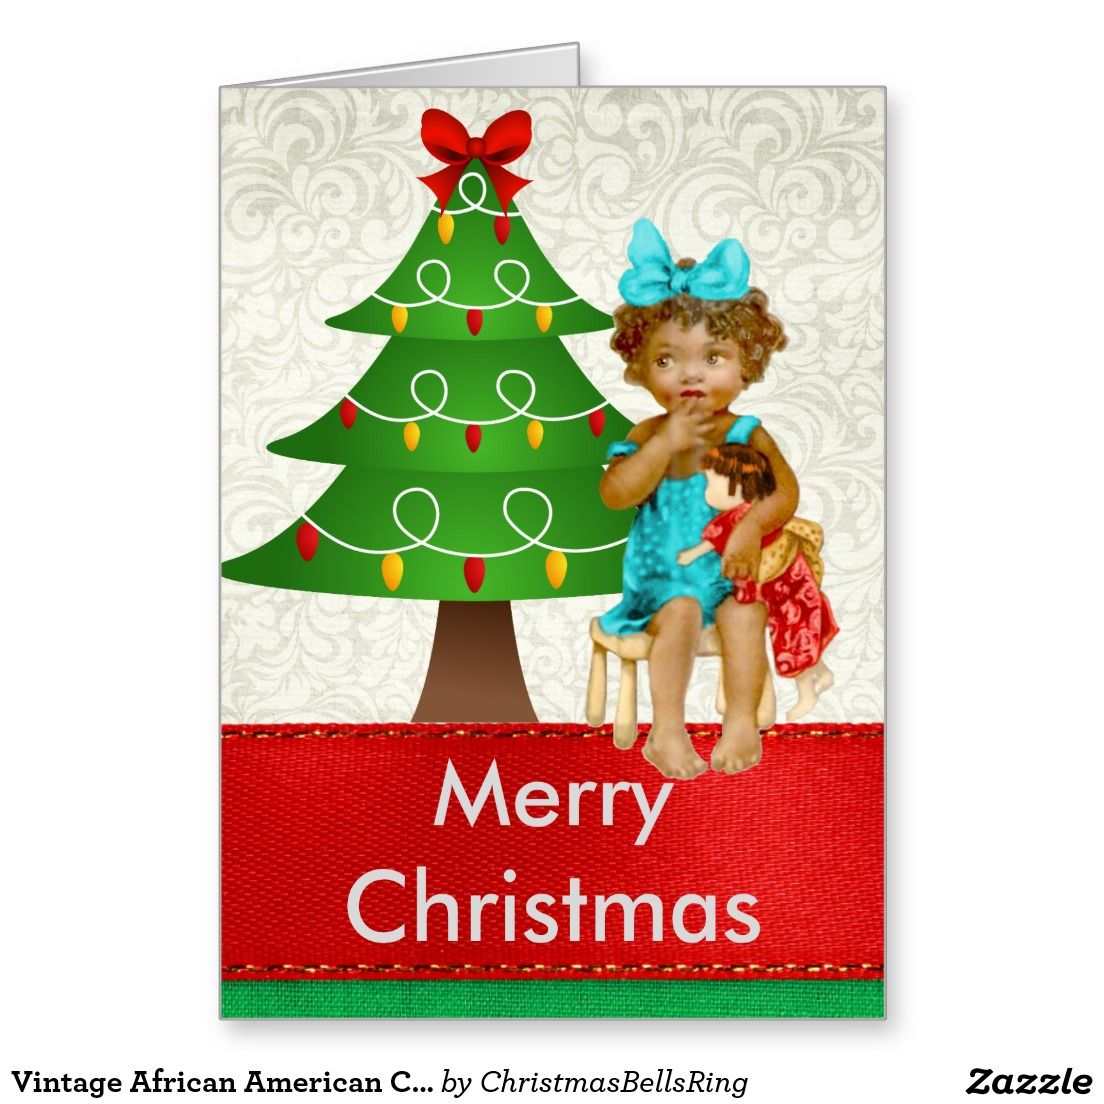 Vintage African American Christmas Cards Google Search Vintage